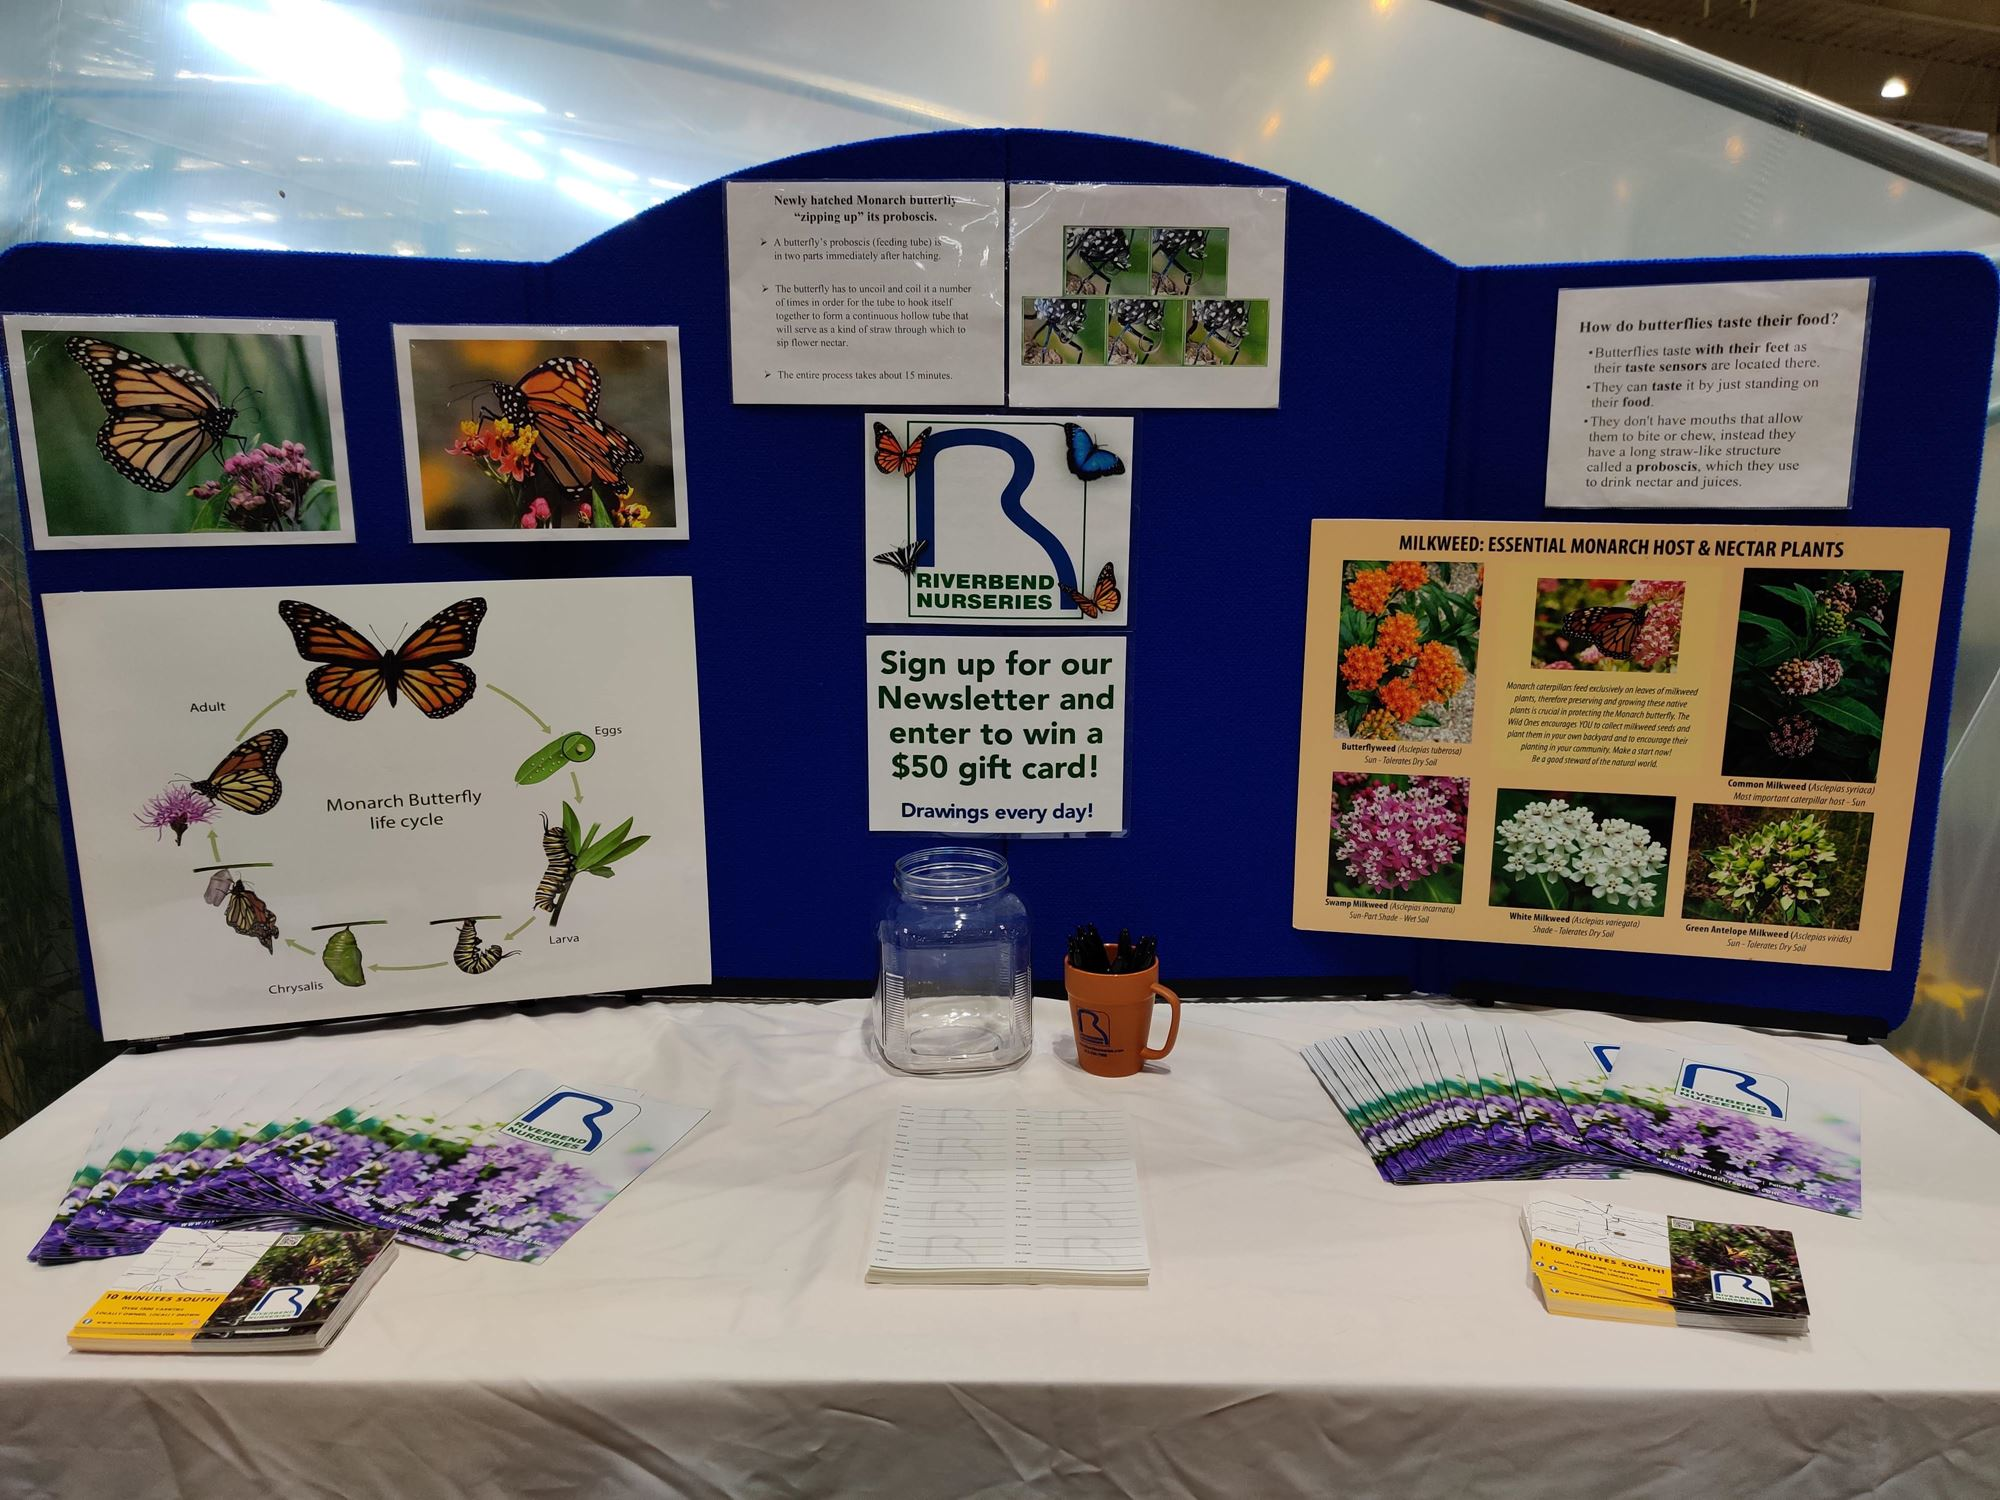 Education display about butterflies